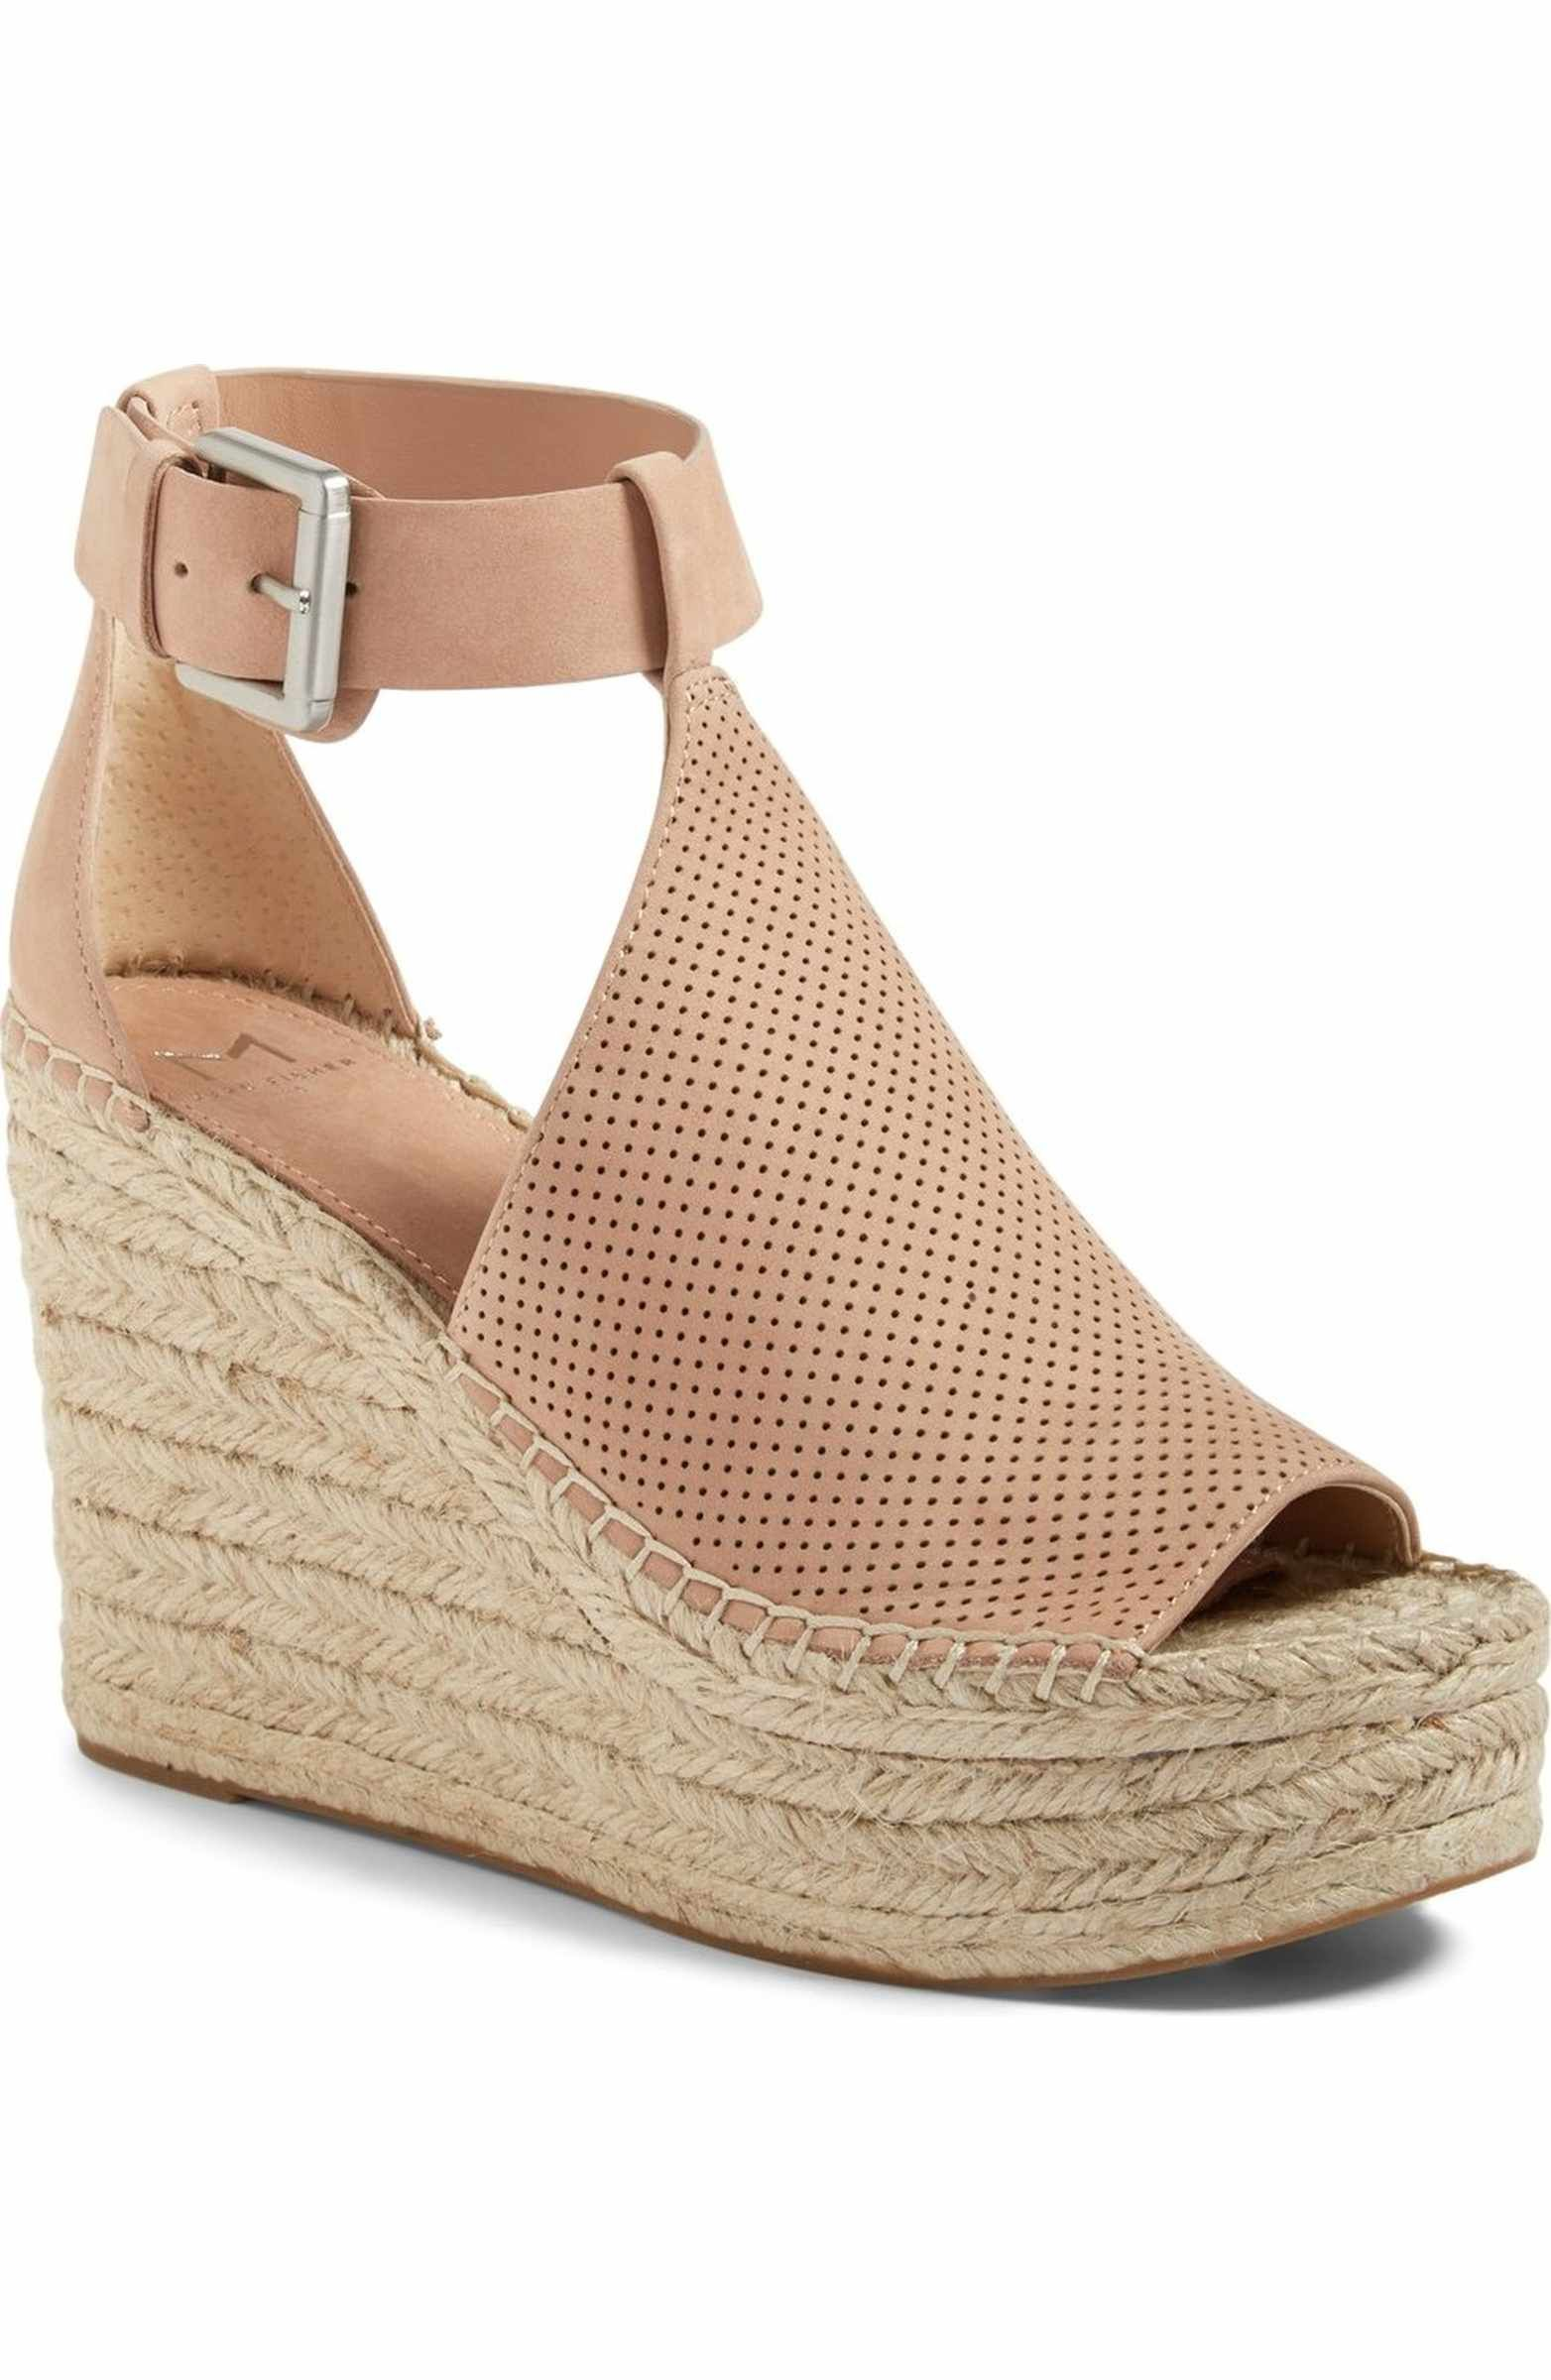 eb28de93ec1 Main Image - Marc Fisher LTD Annie Perforated Espadrille Platform ...